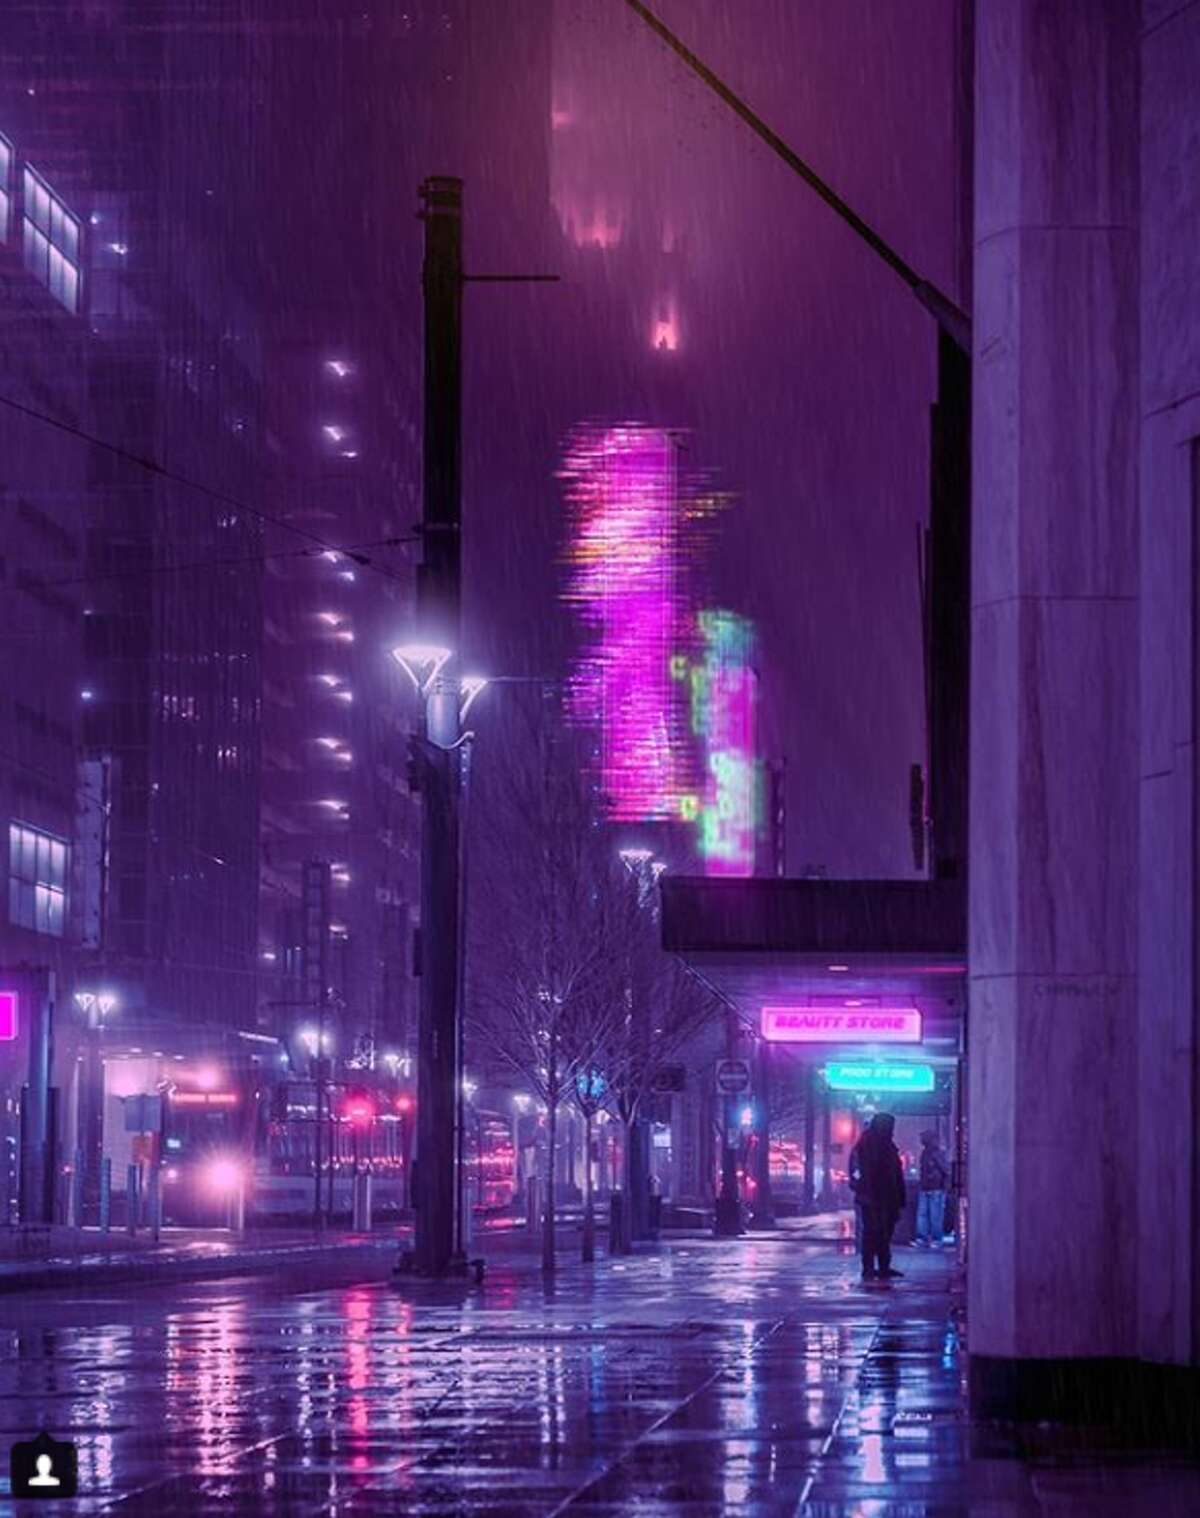 In a new photo series, Chris Nhut Le has imagined Houston floating among the stars with streets bathed in neon light similar to scenes from